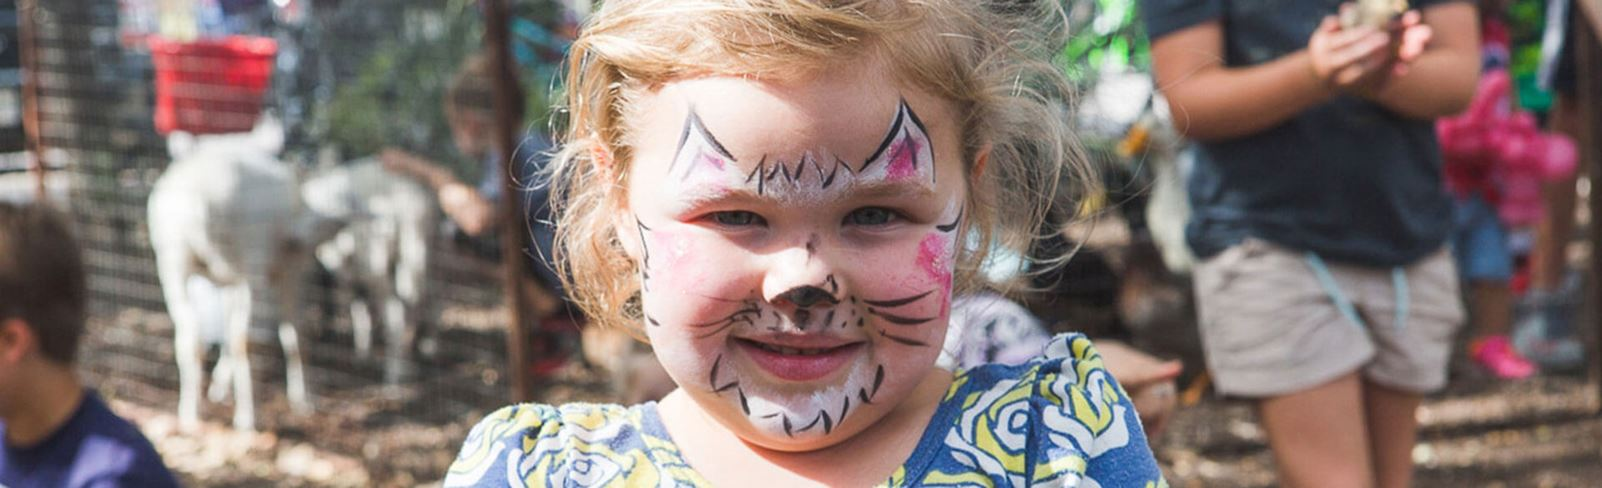 Rancho Sienna girl with painted face holding a chick in a petting corral at Harvest Festival